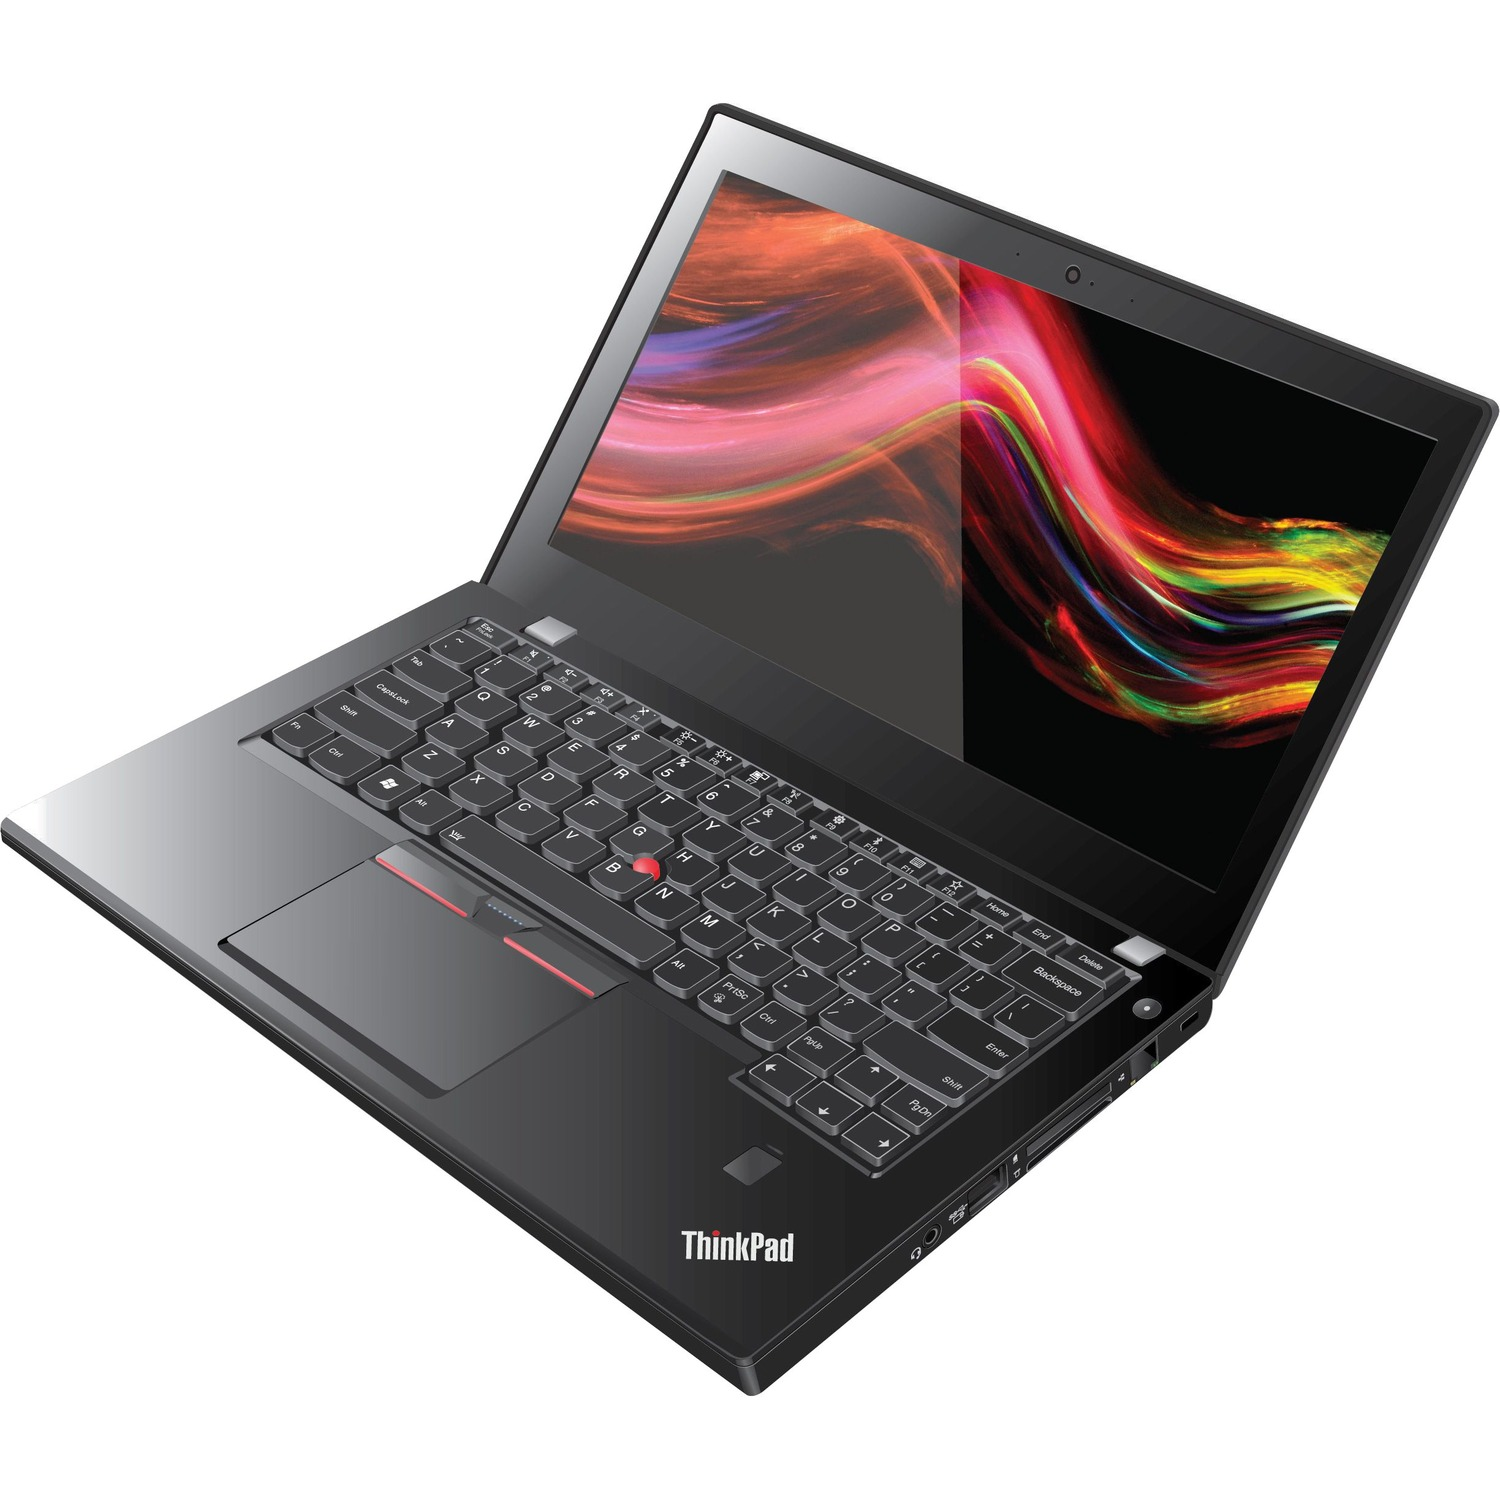 Lenovo ThinkPad X270 20HN0012UK 31.8 cm 12.5inch LCD Notebook - Intel Core i7 7th Gen i7-7500U Dual-core 2 Core 2.70 GHz - 8 GB DDR4 SDRAM - 256 GB SSD - Windows